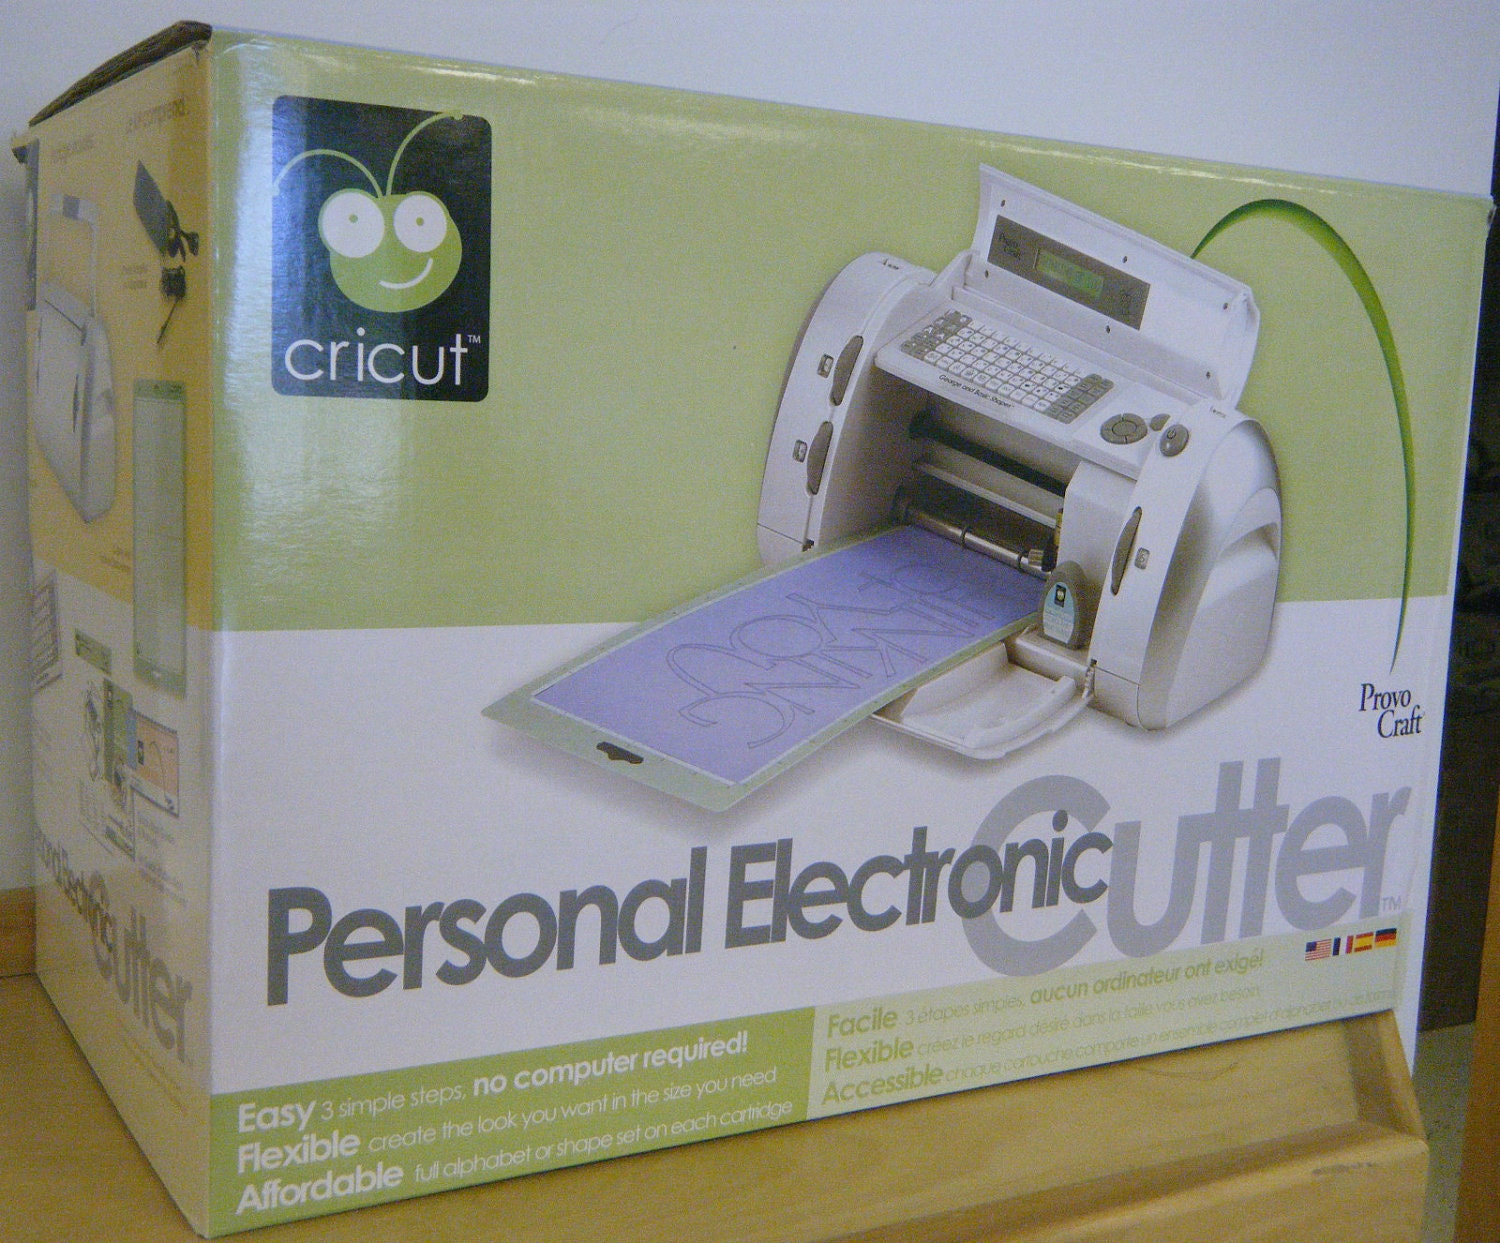 cricut personal electronic cutter machine